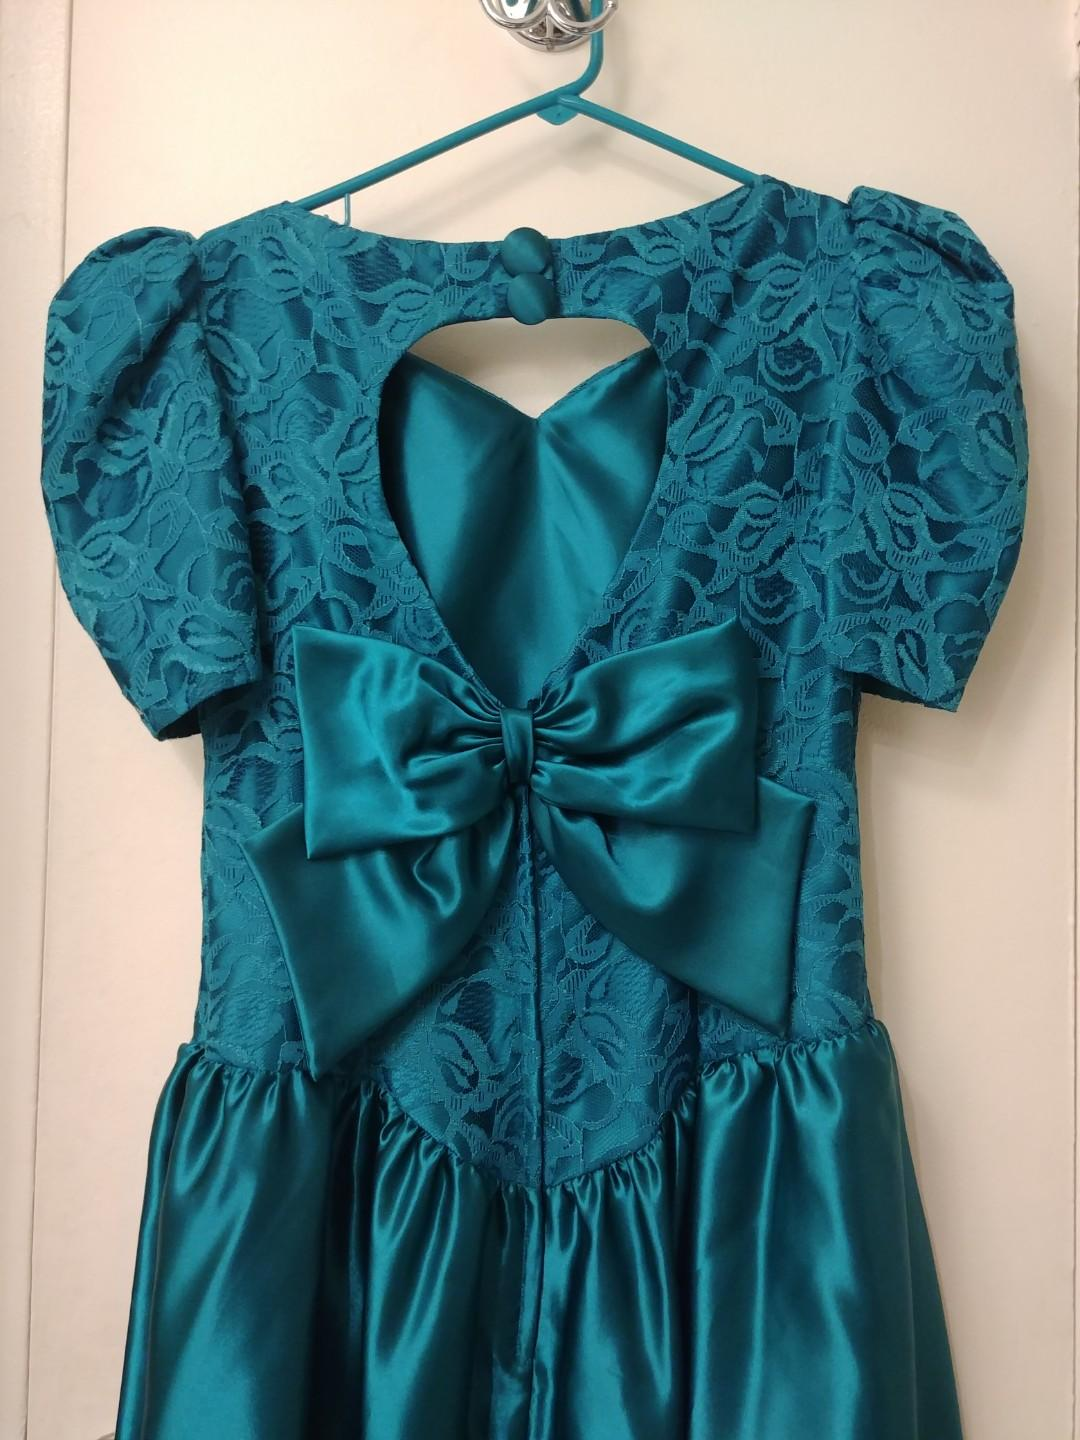 Like New 1980s Alfred Angelo Brides Maid Dress in Teal Green